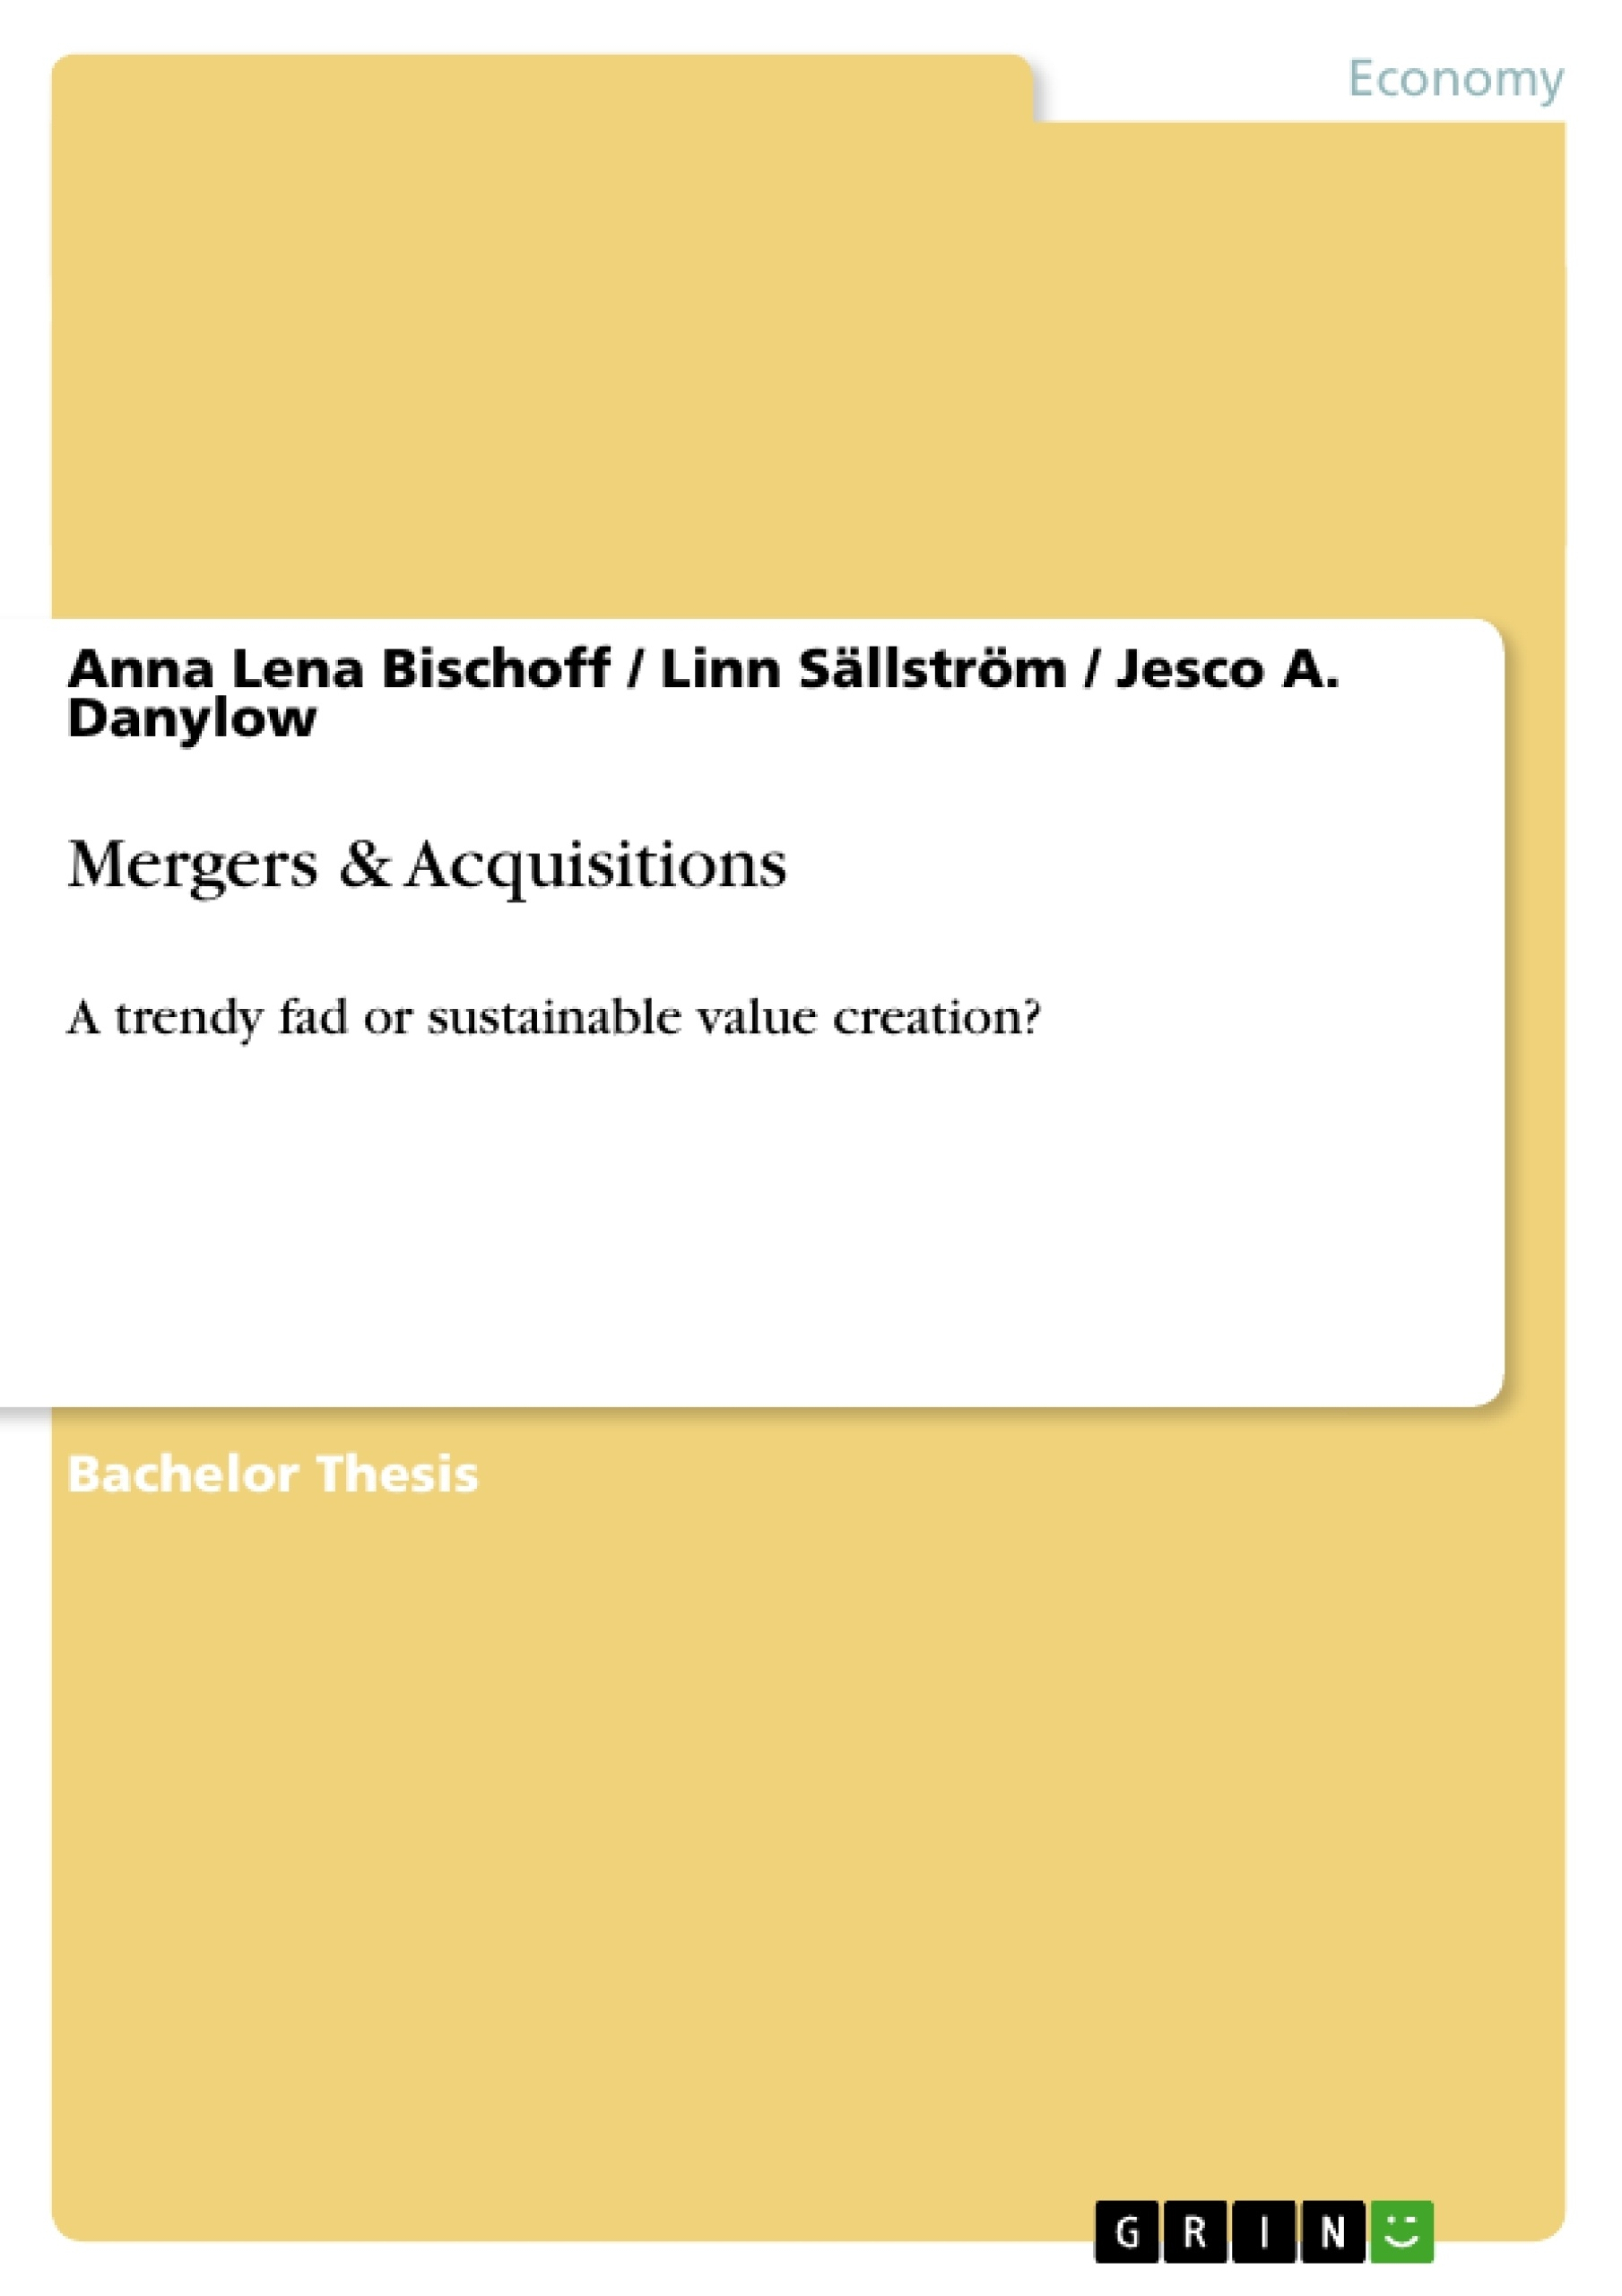 Title: Mergers & Acquisitions